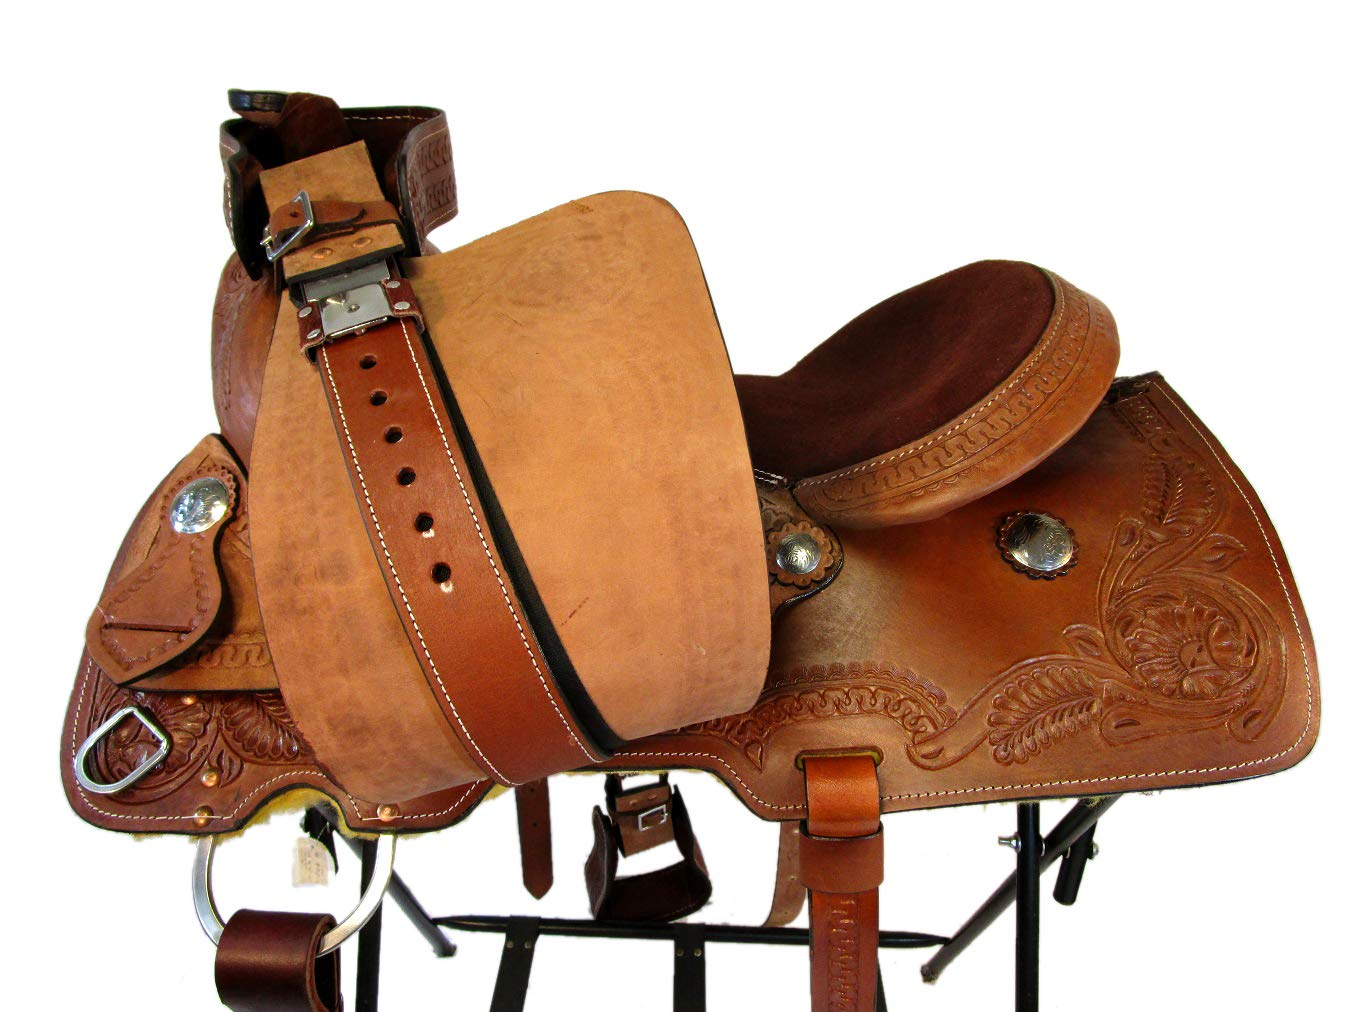 Amazon.com : Orlov Hill Leather Co 15 16 17 Brown Roper ...